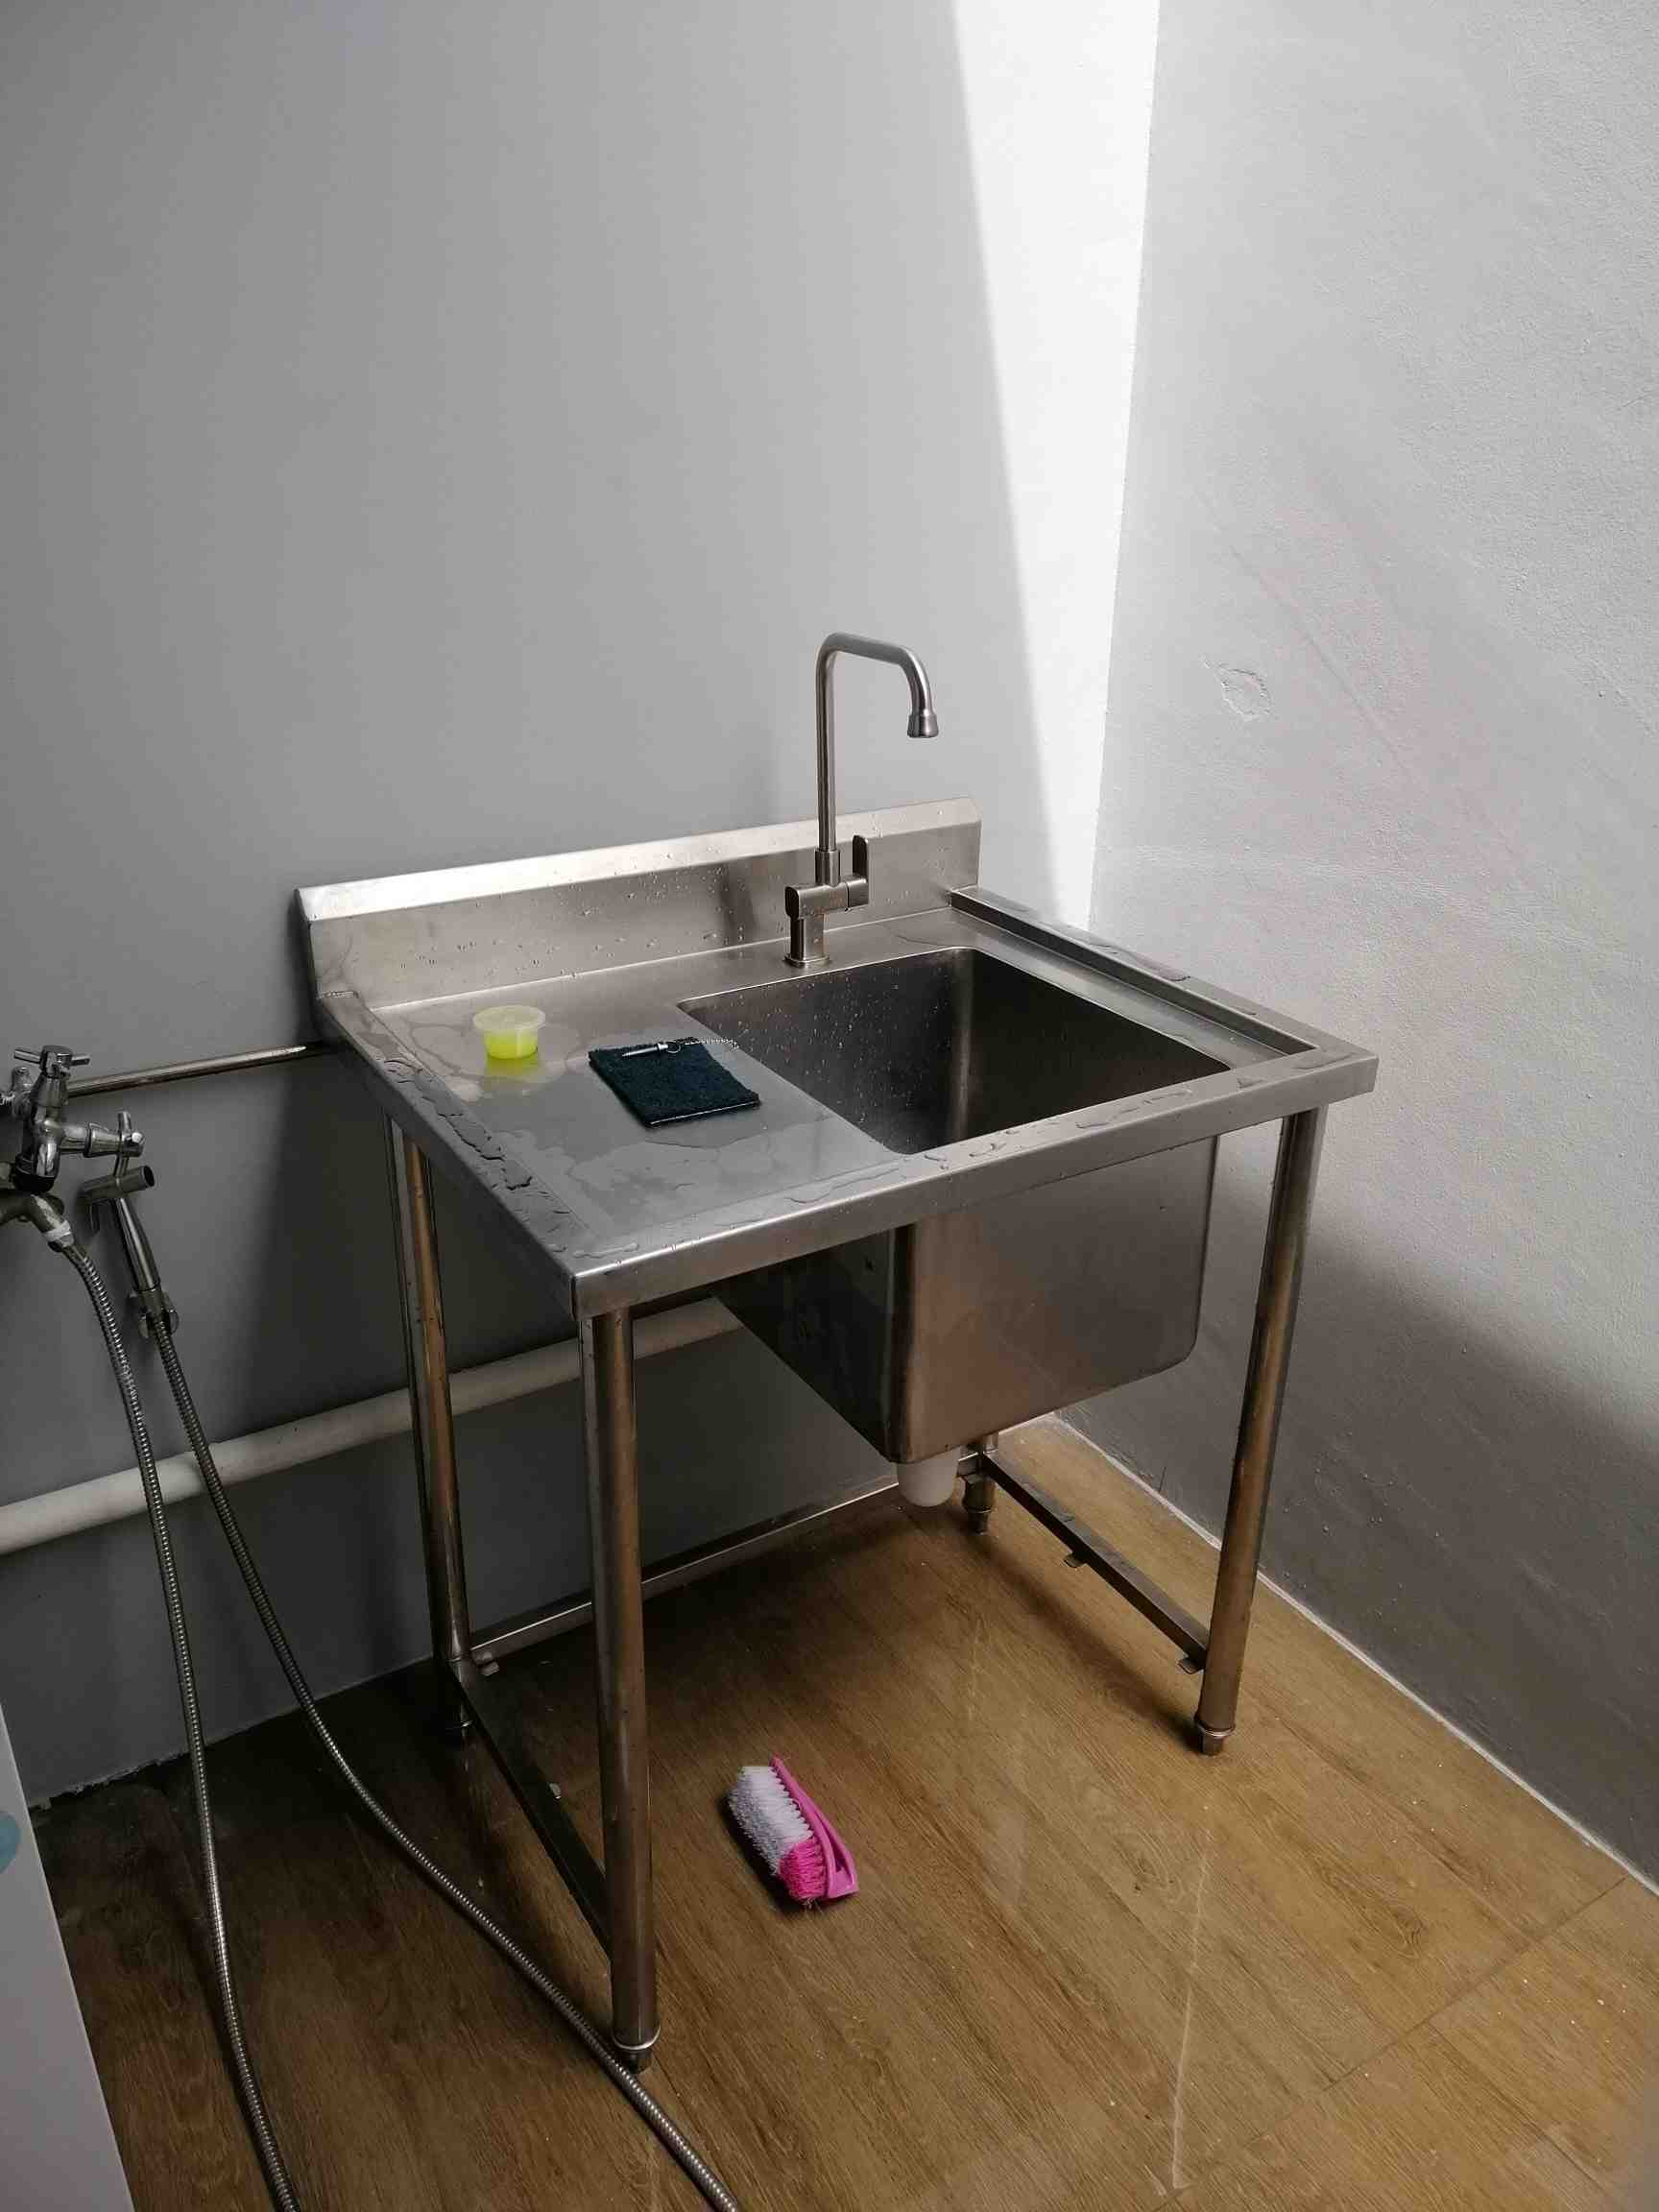 Roof terrace   stainless steel sink